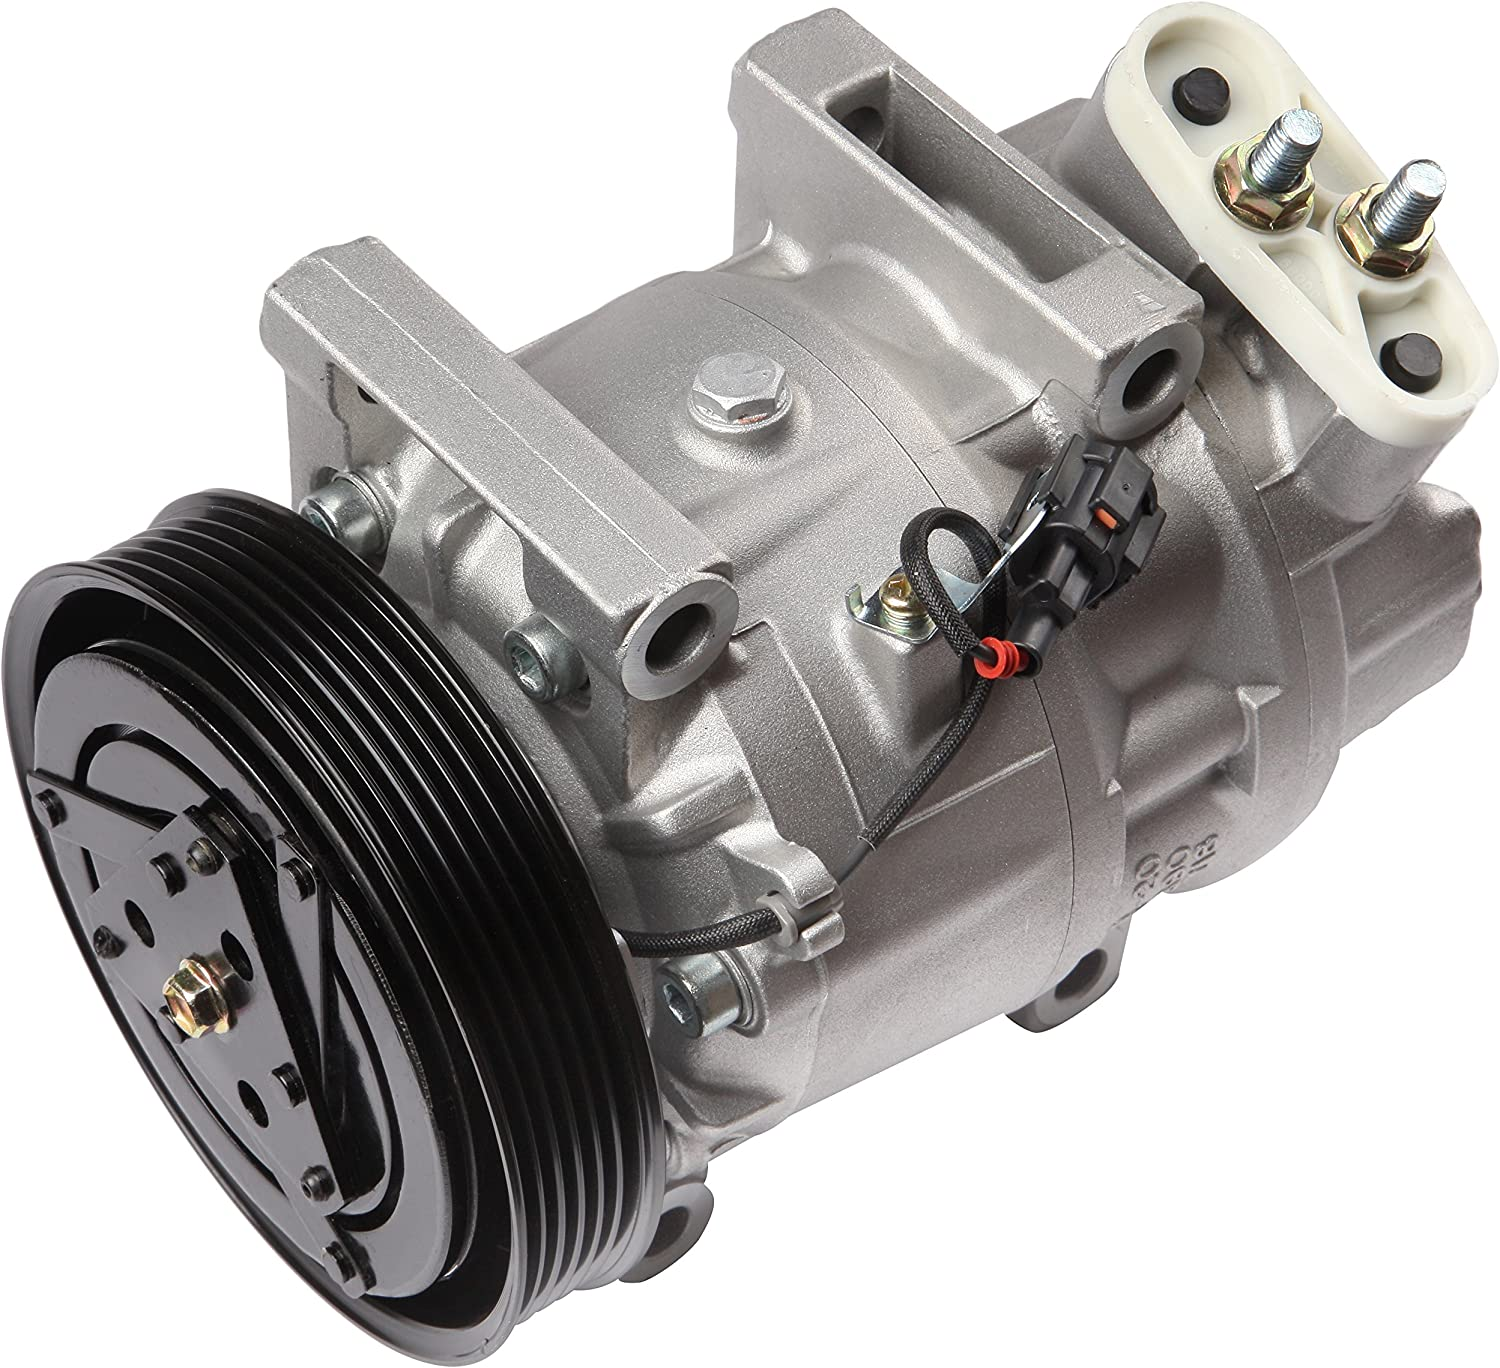 GDSMOTU Air Conditioning Compressor Overseas parallel import regular item and CO Assembly Max 73% OFF Clutch 10552